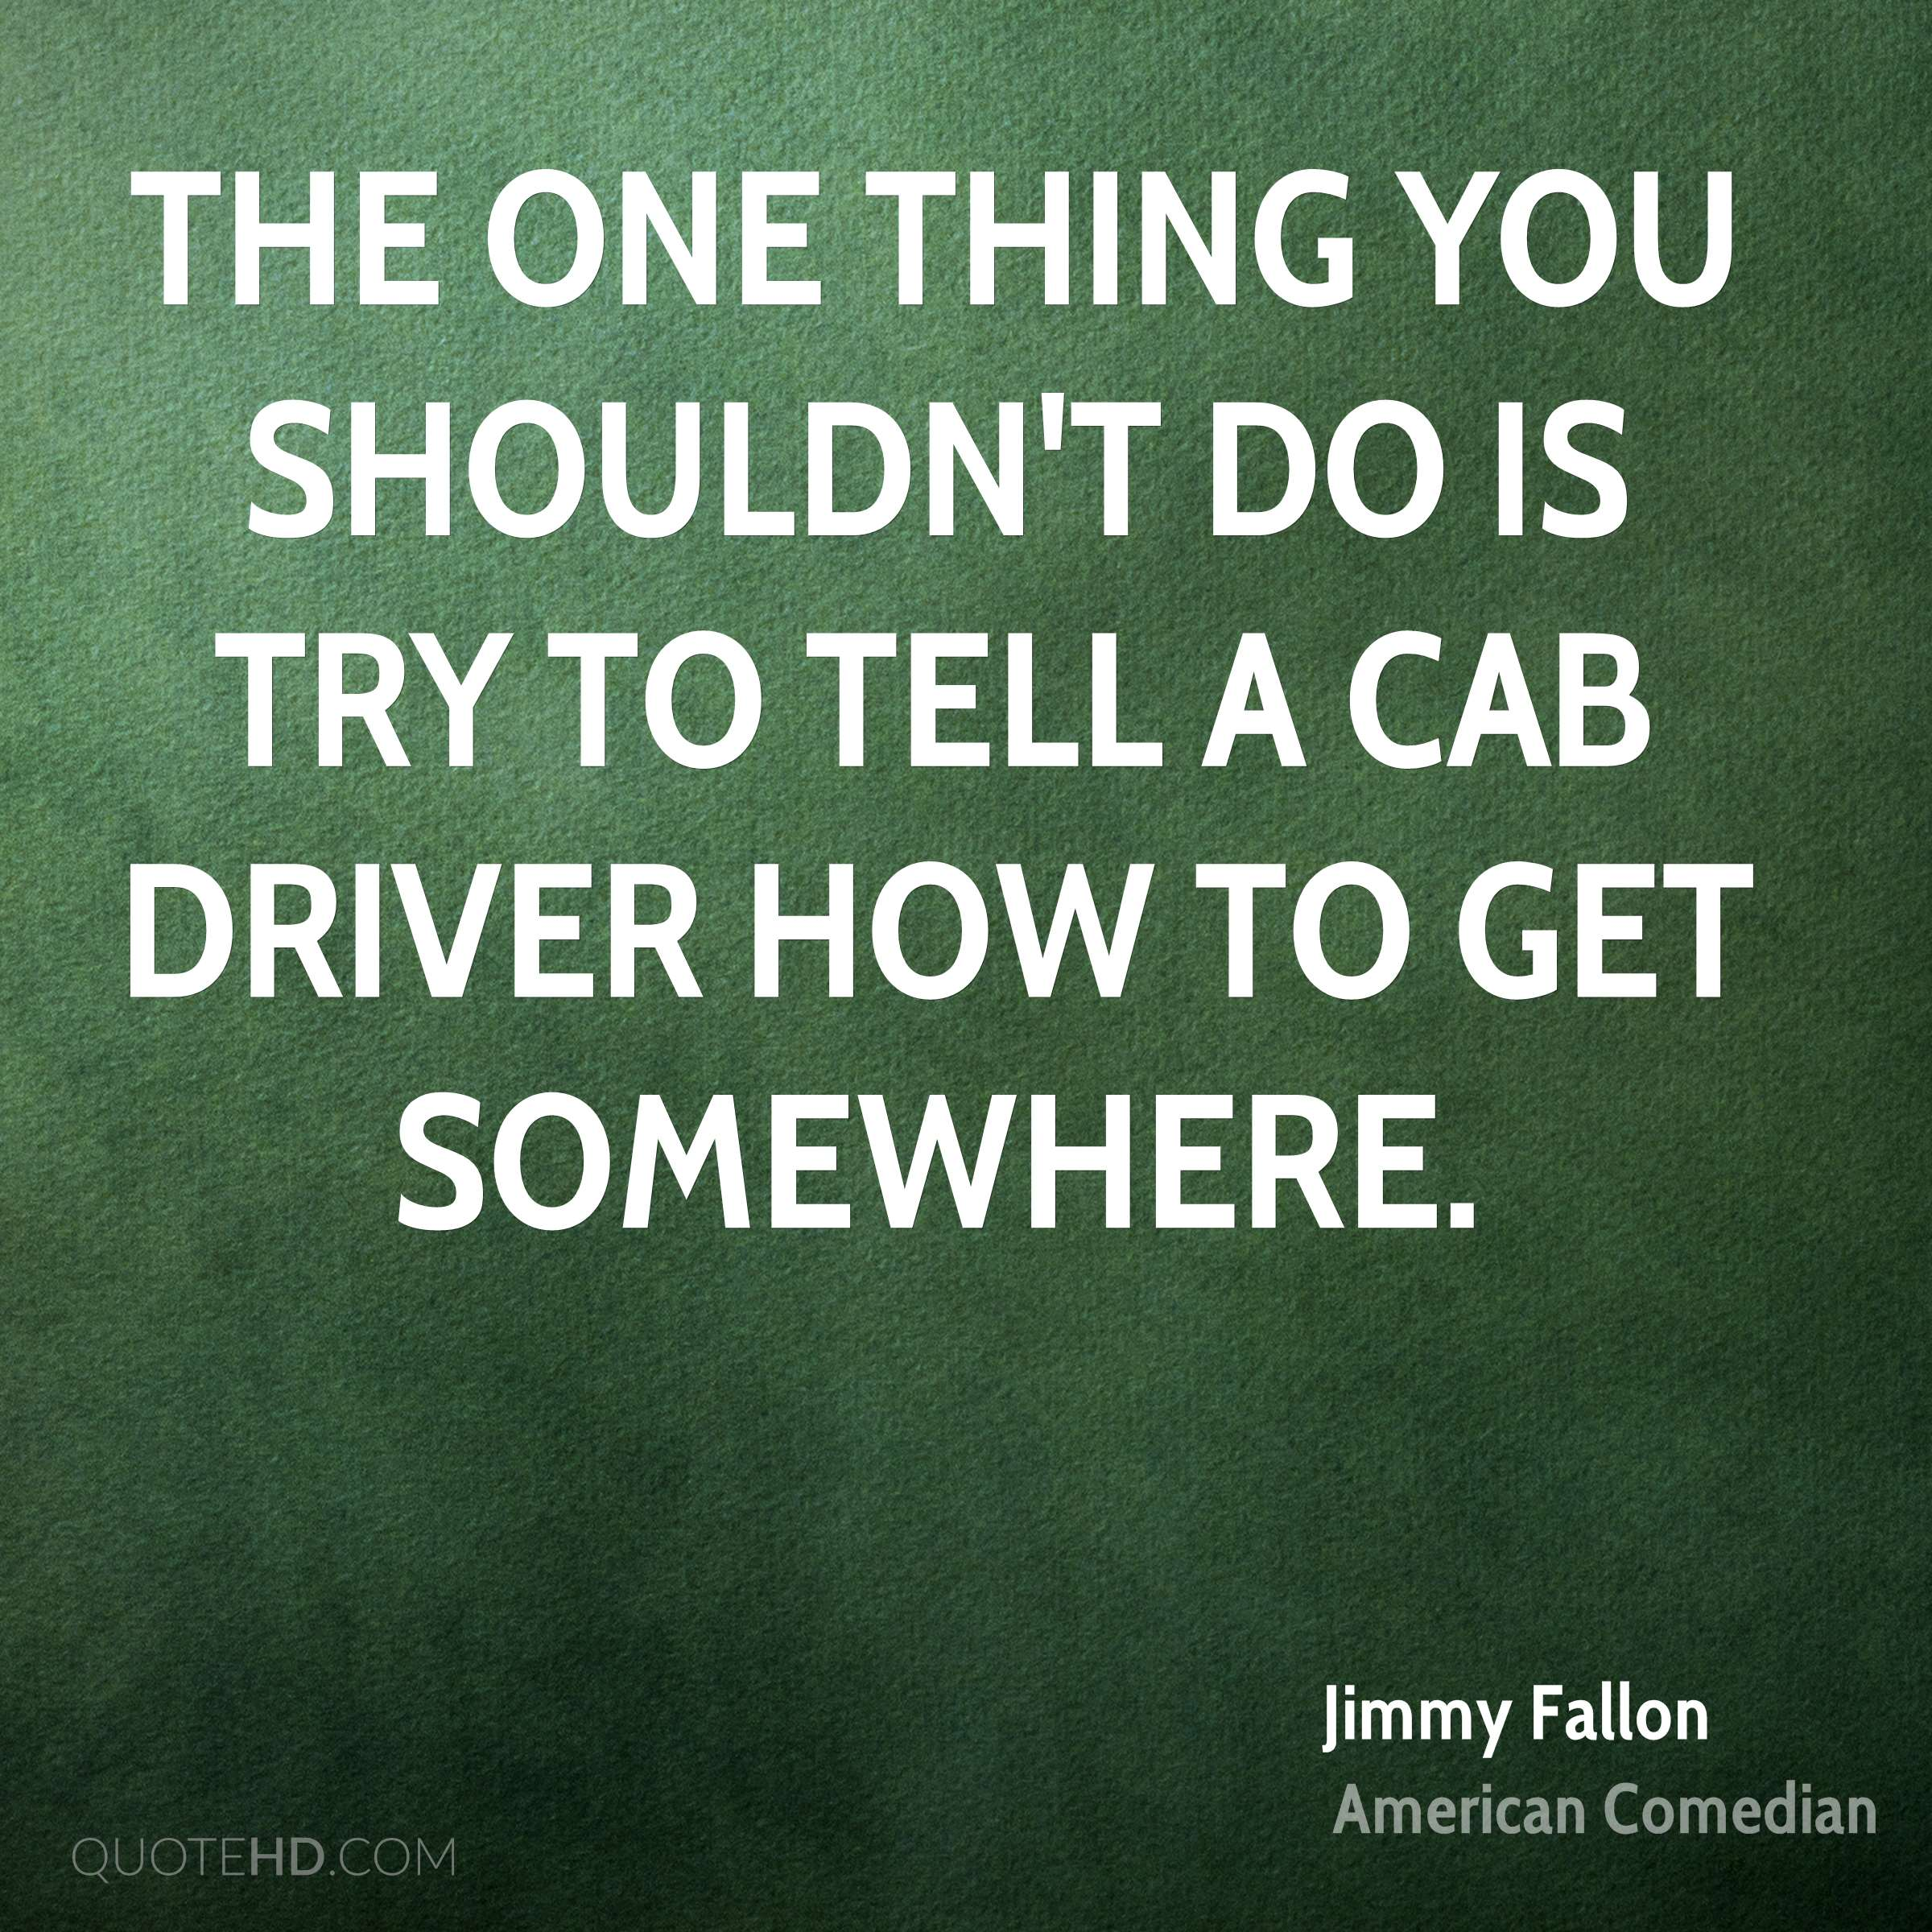 The one thing you shouldn't do is try to tell a cab driver how to get somewhere.